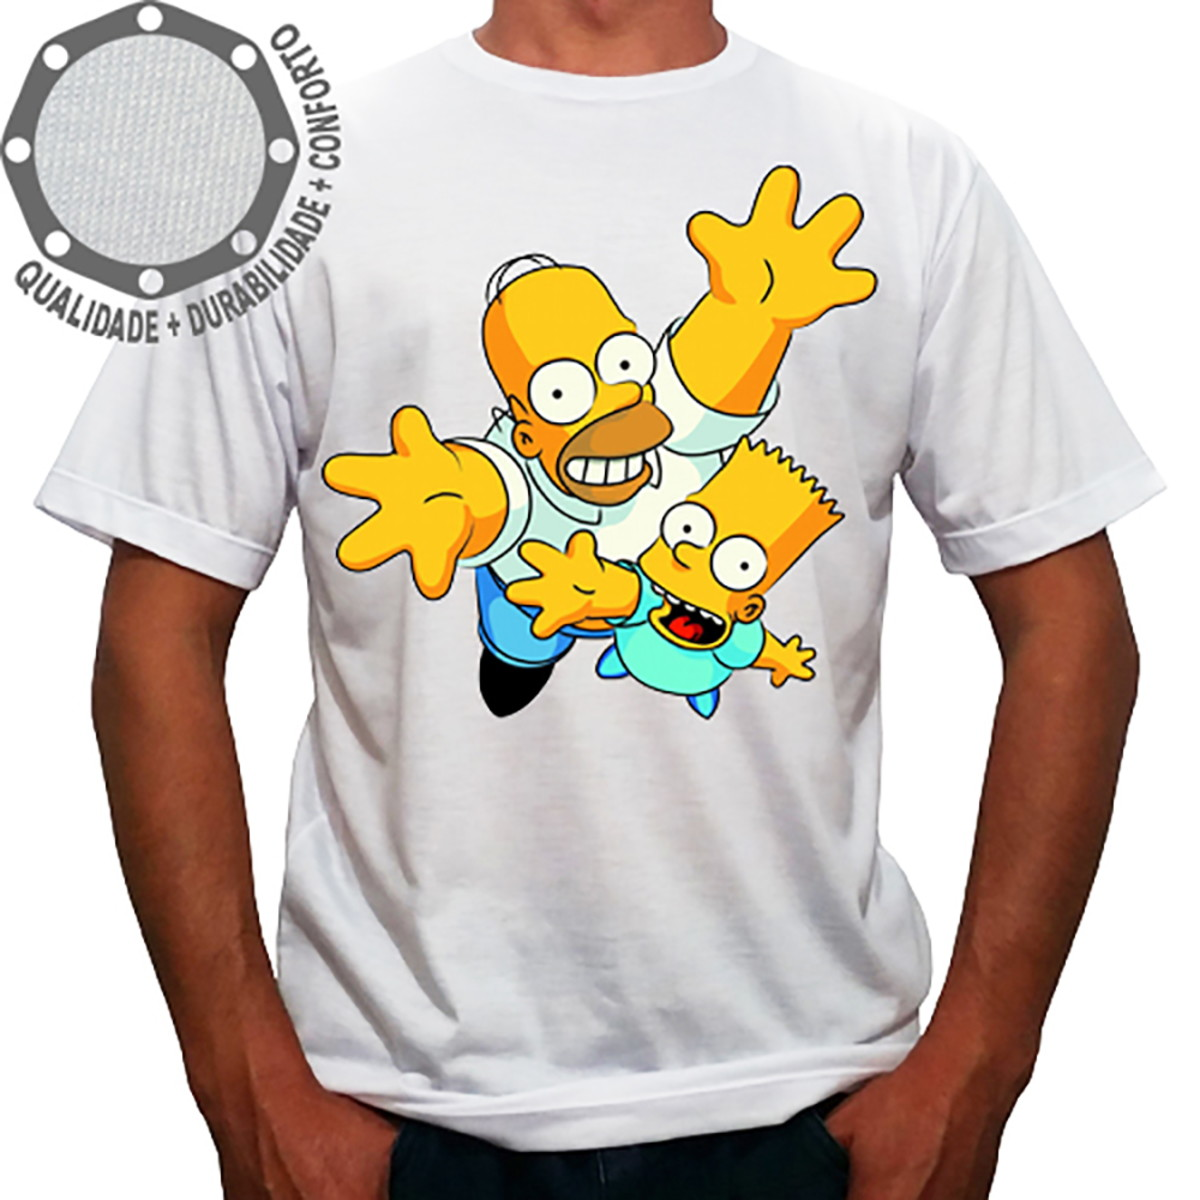 5f117db2c3867 Camiseta Os Simpsons Homer Bart Up no Elo7 | Camisetas P4 (E07D37)